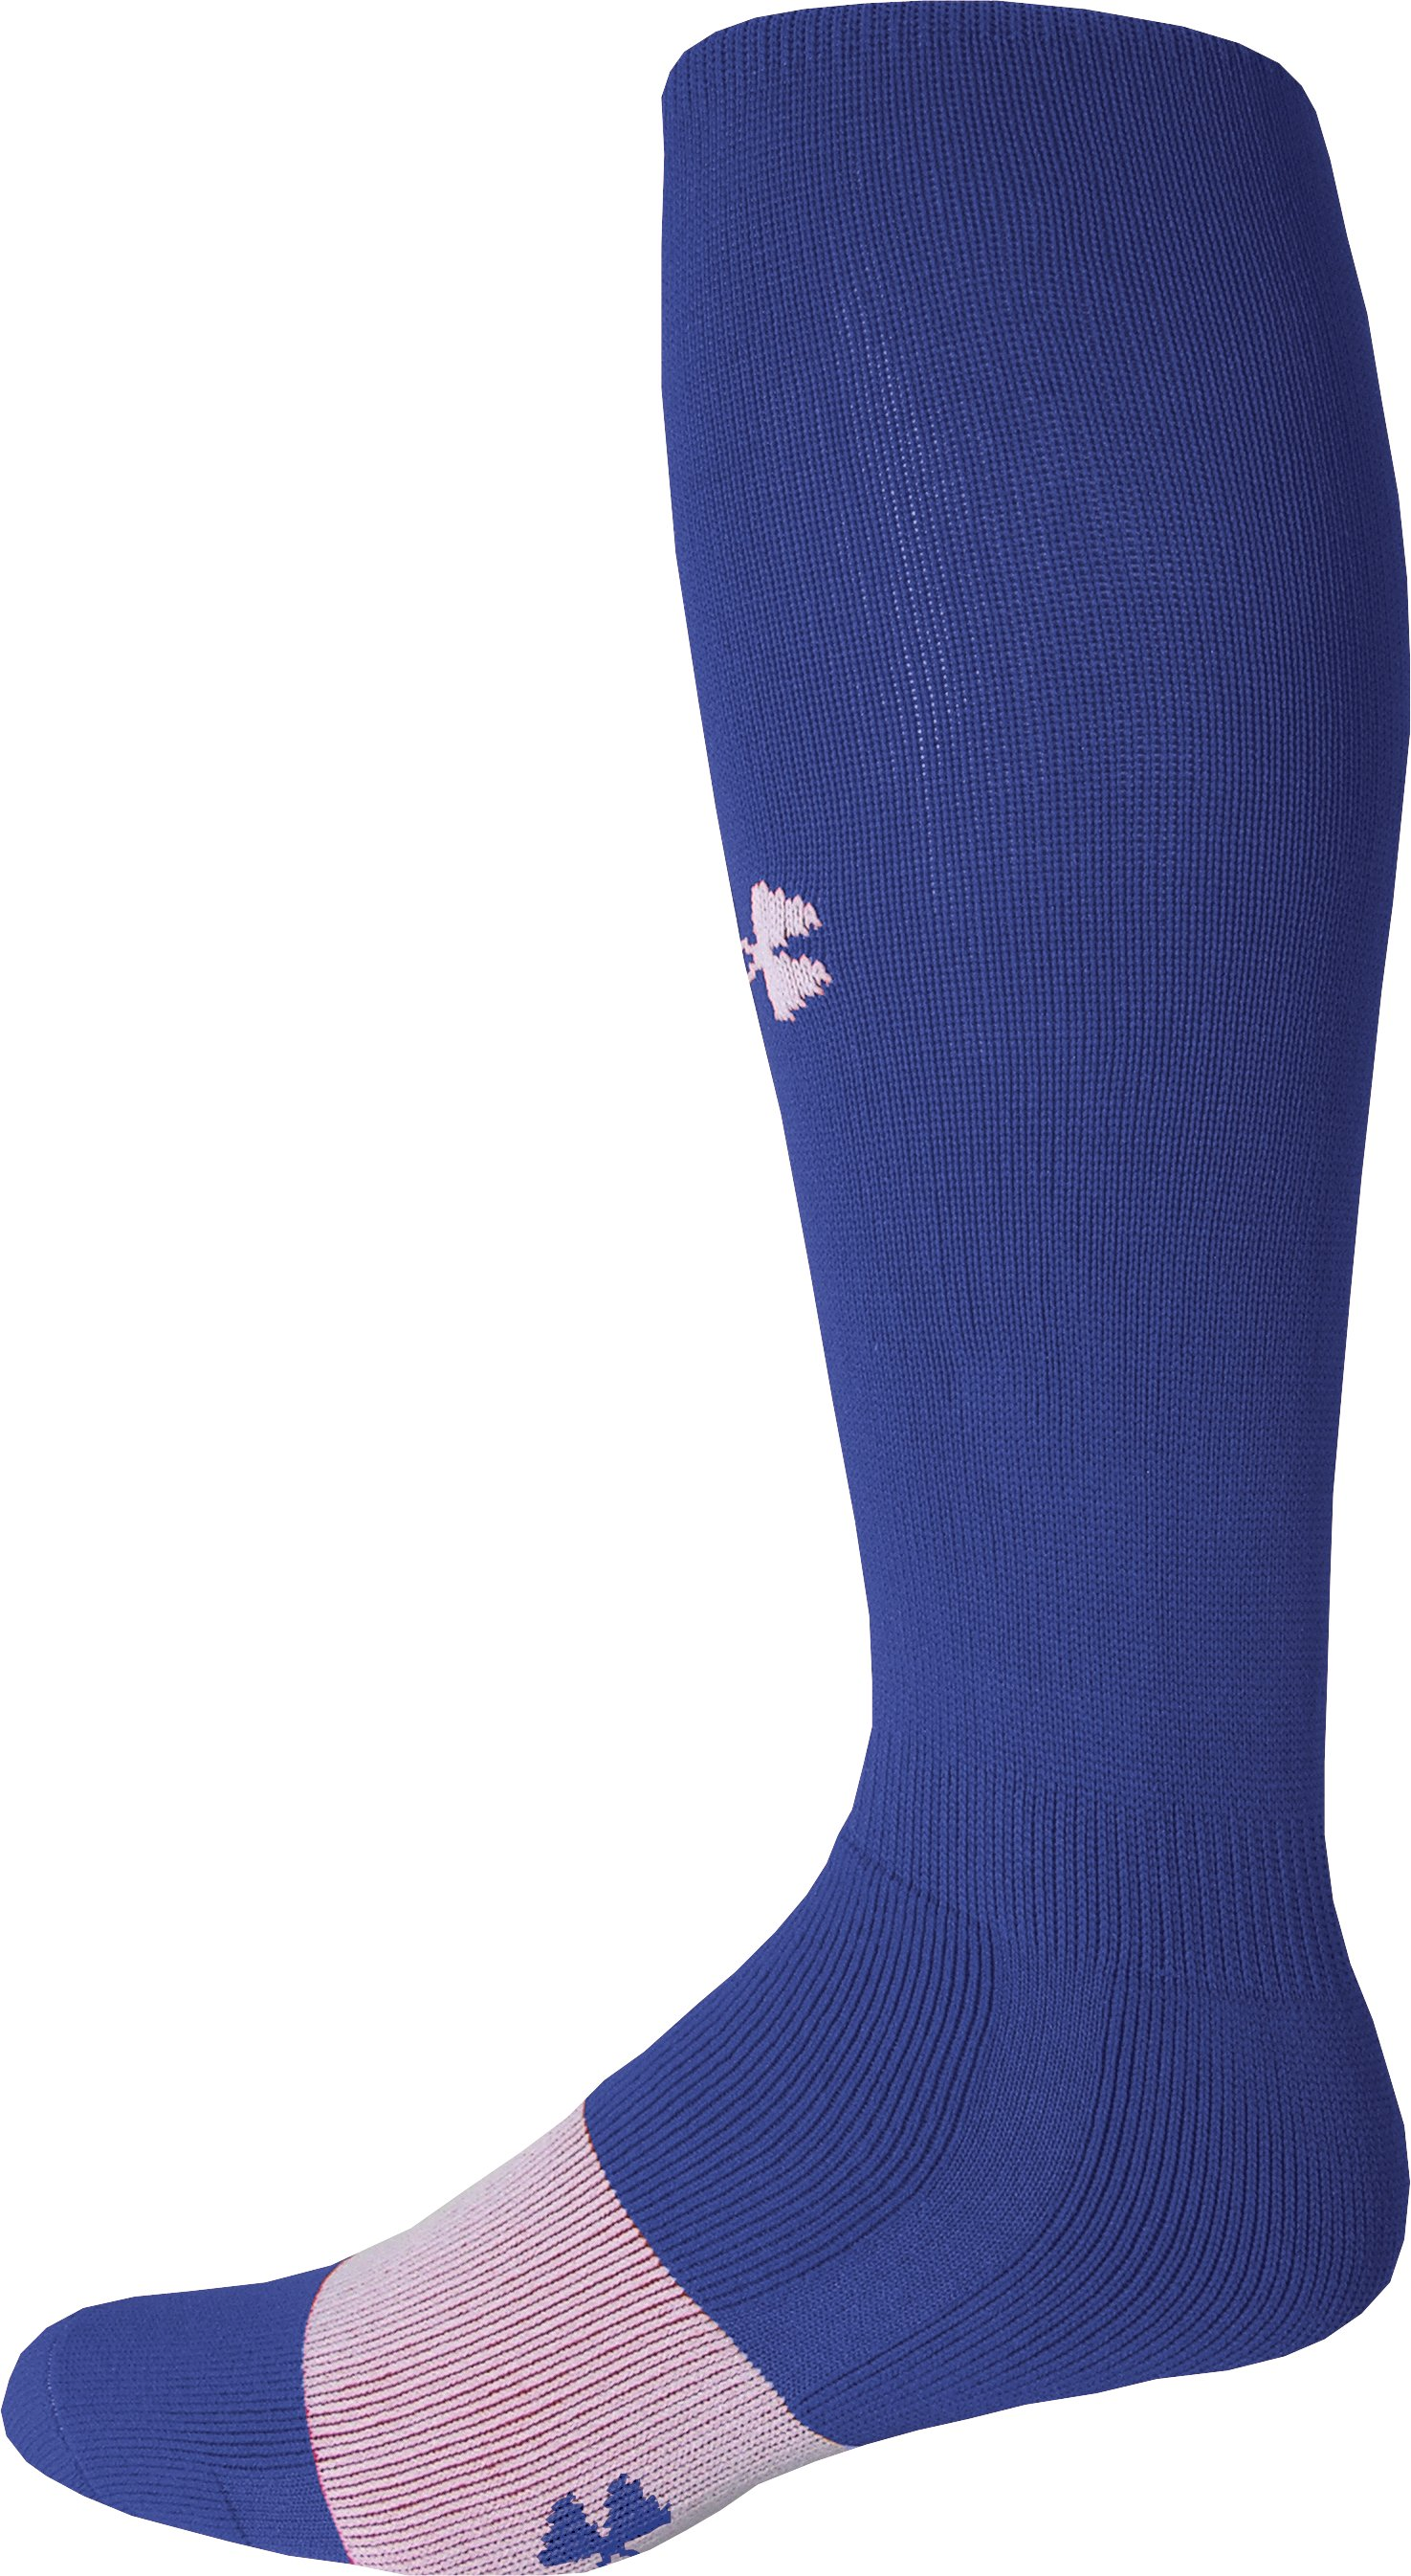 Men's Baseball Sock, Royal, zoomed image